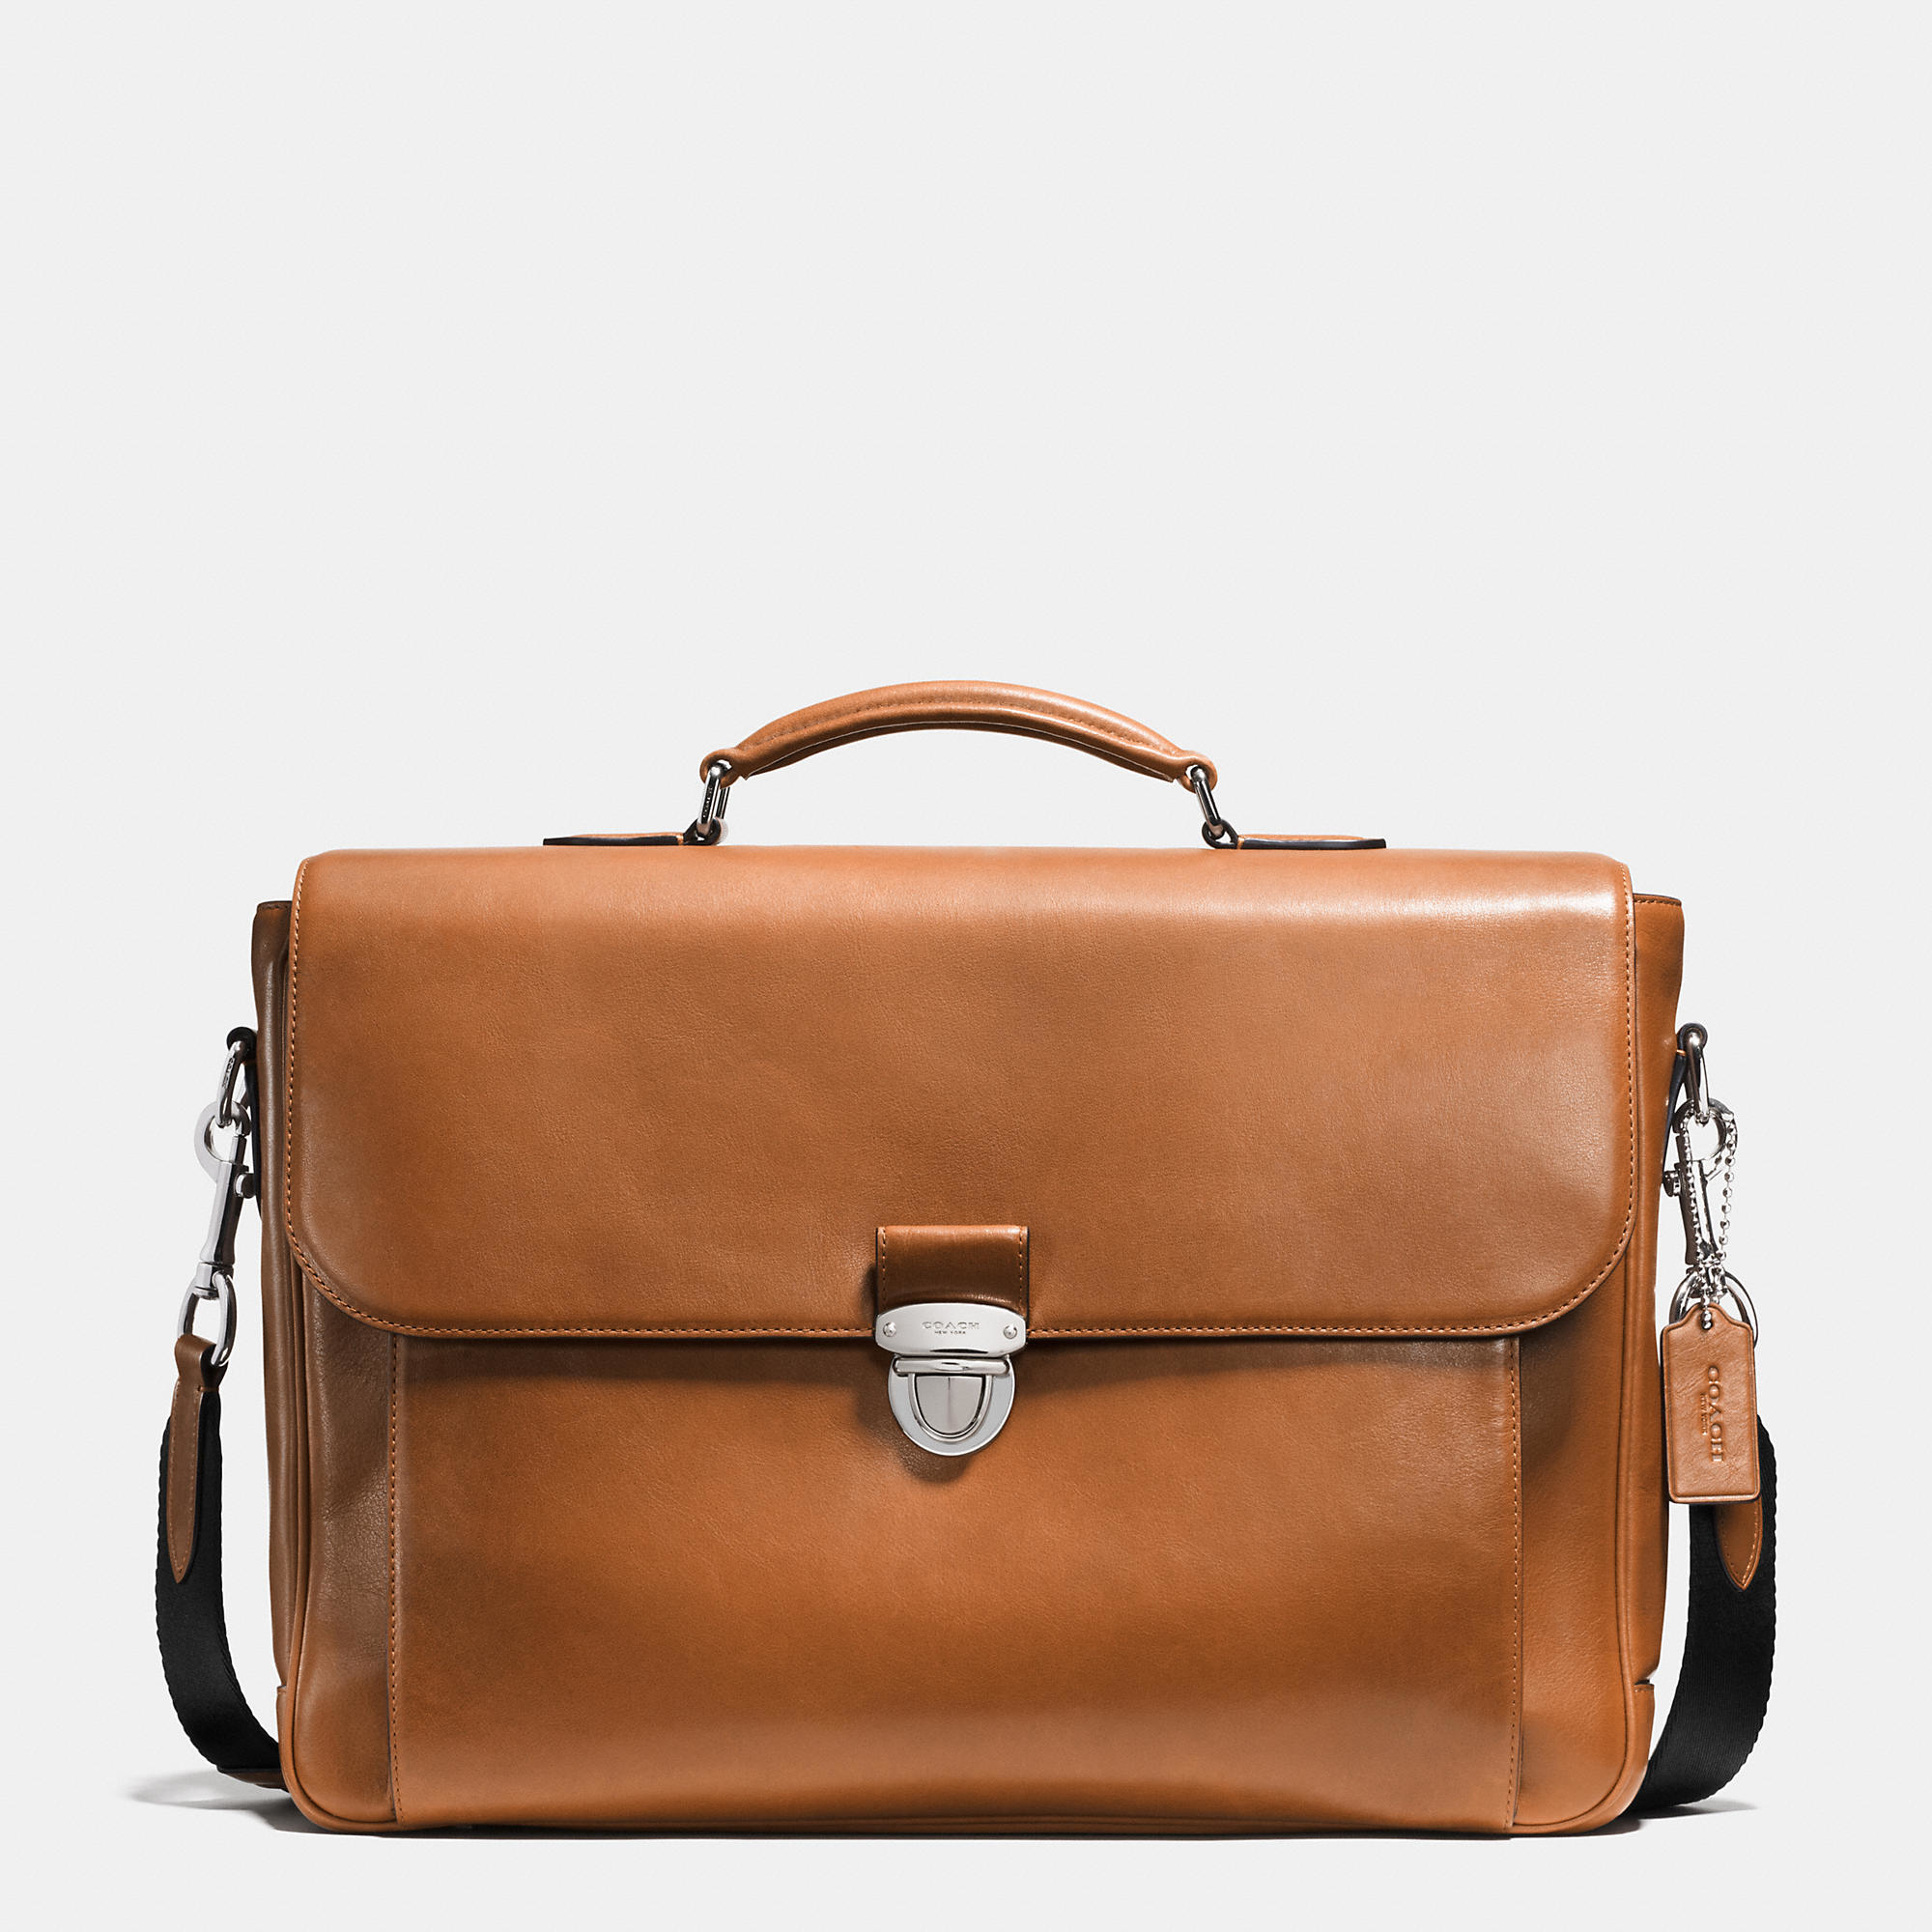 coach metropolitan briefcase photo - 1